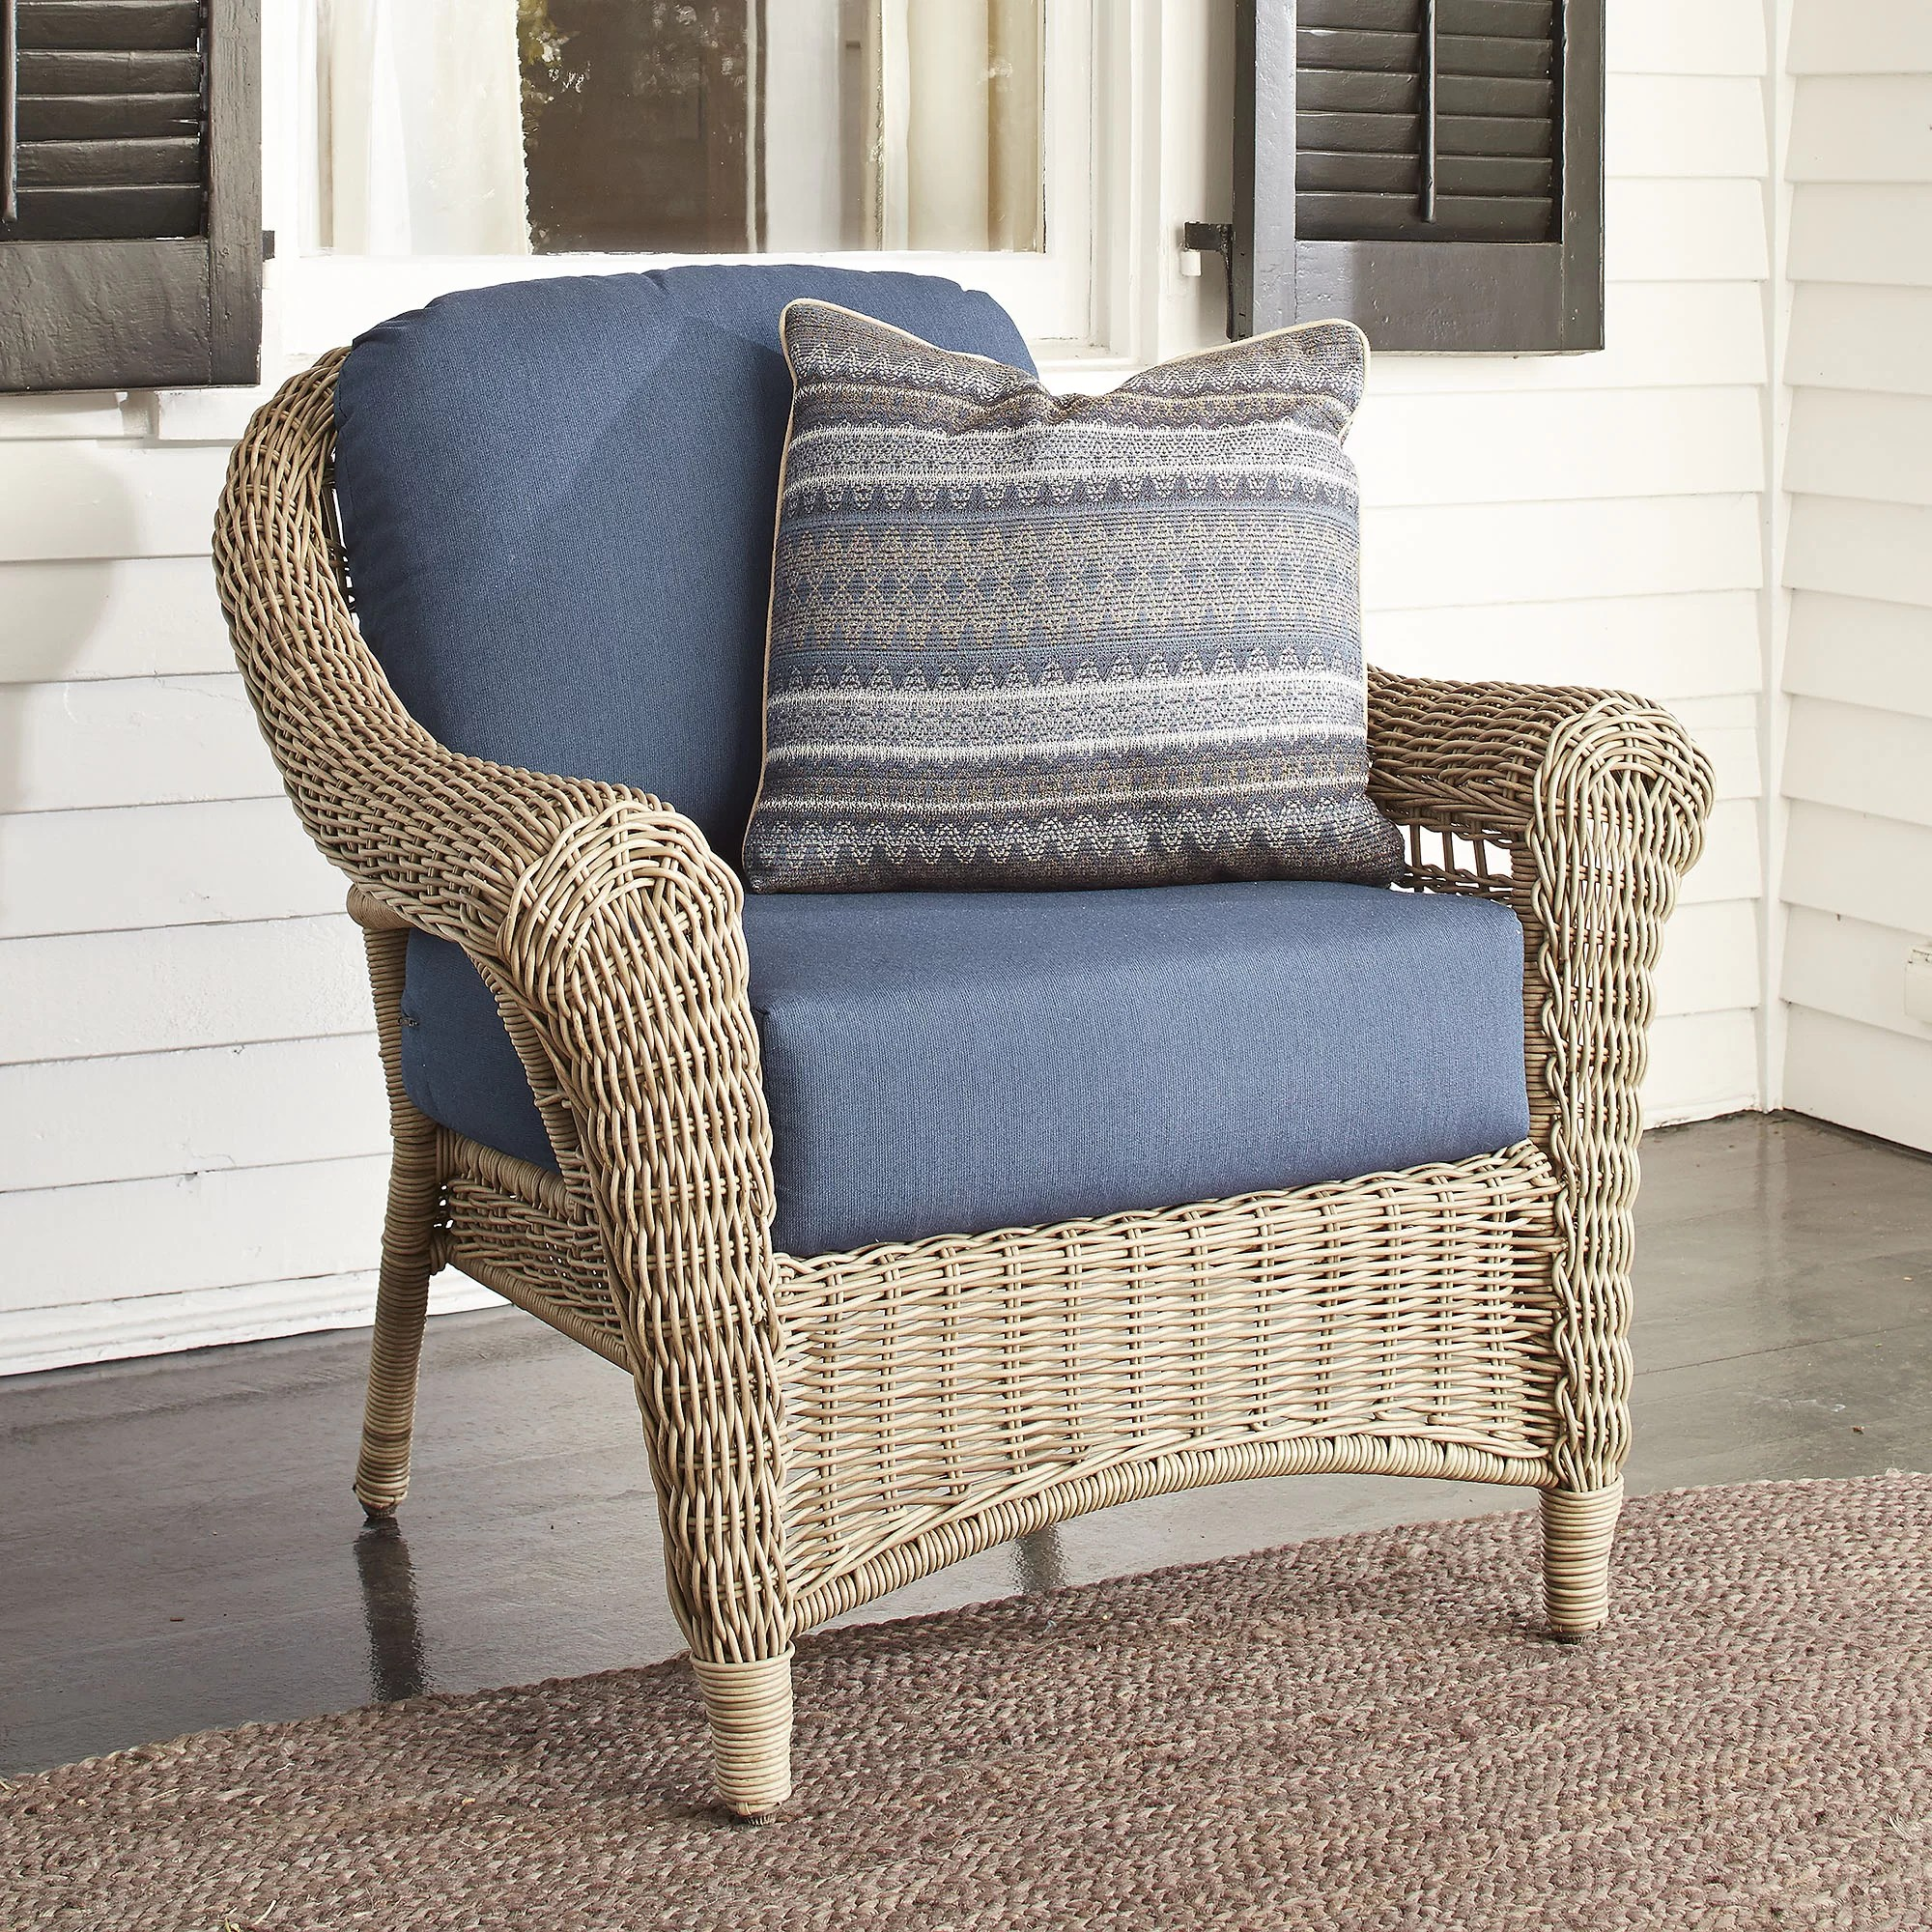 cushions for wicker chairs nicia revolving chair birch lane lynwood with sunbrella